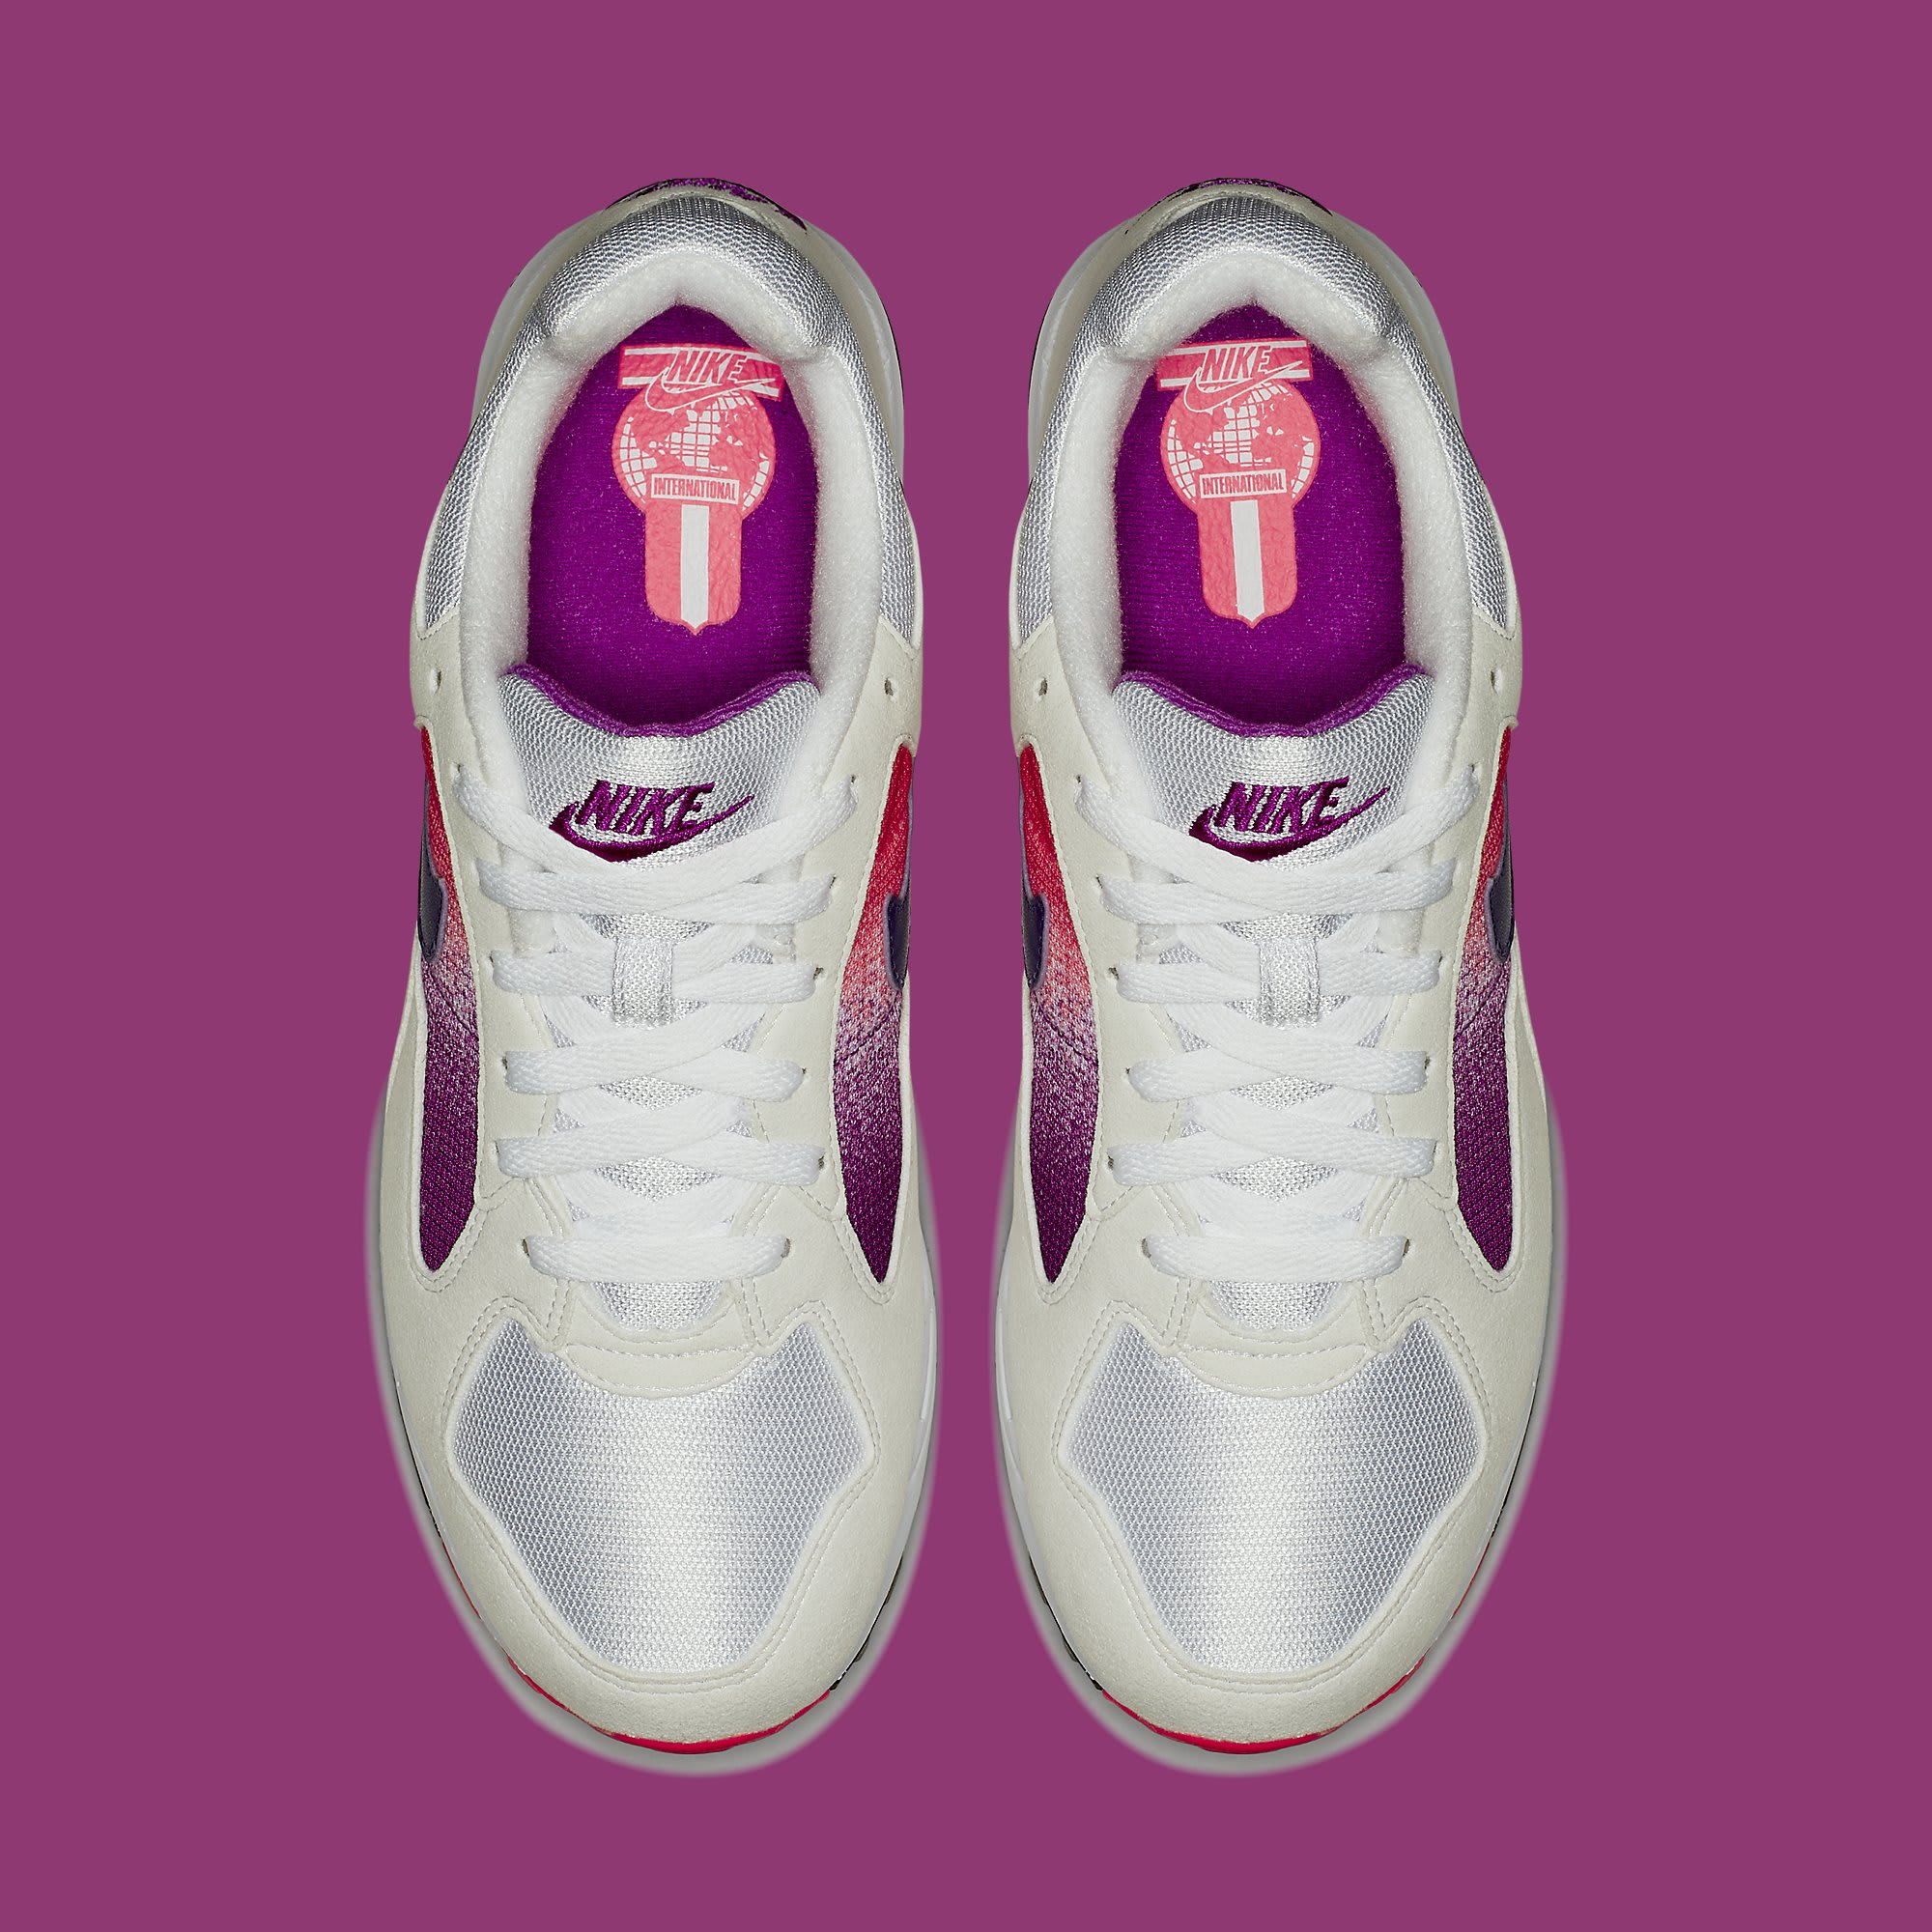 Nike Air Skylon 2 White Court Purple Solar Red Release Date AO1551-103 Top